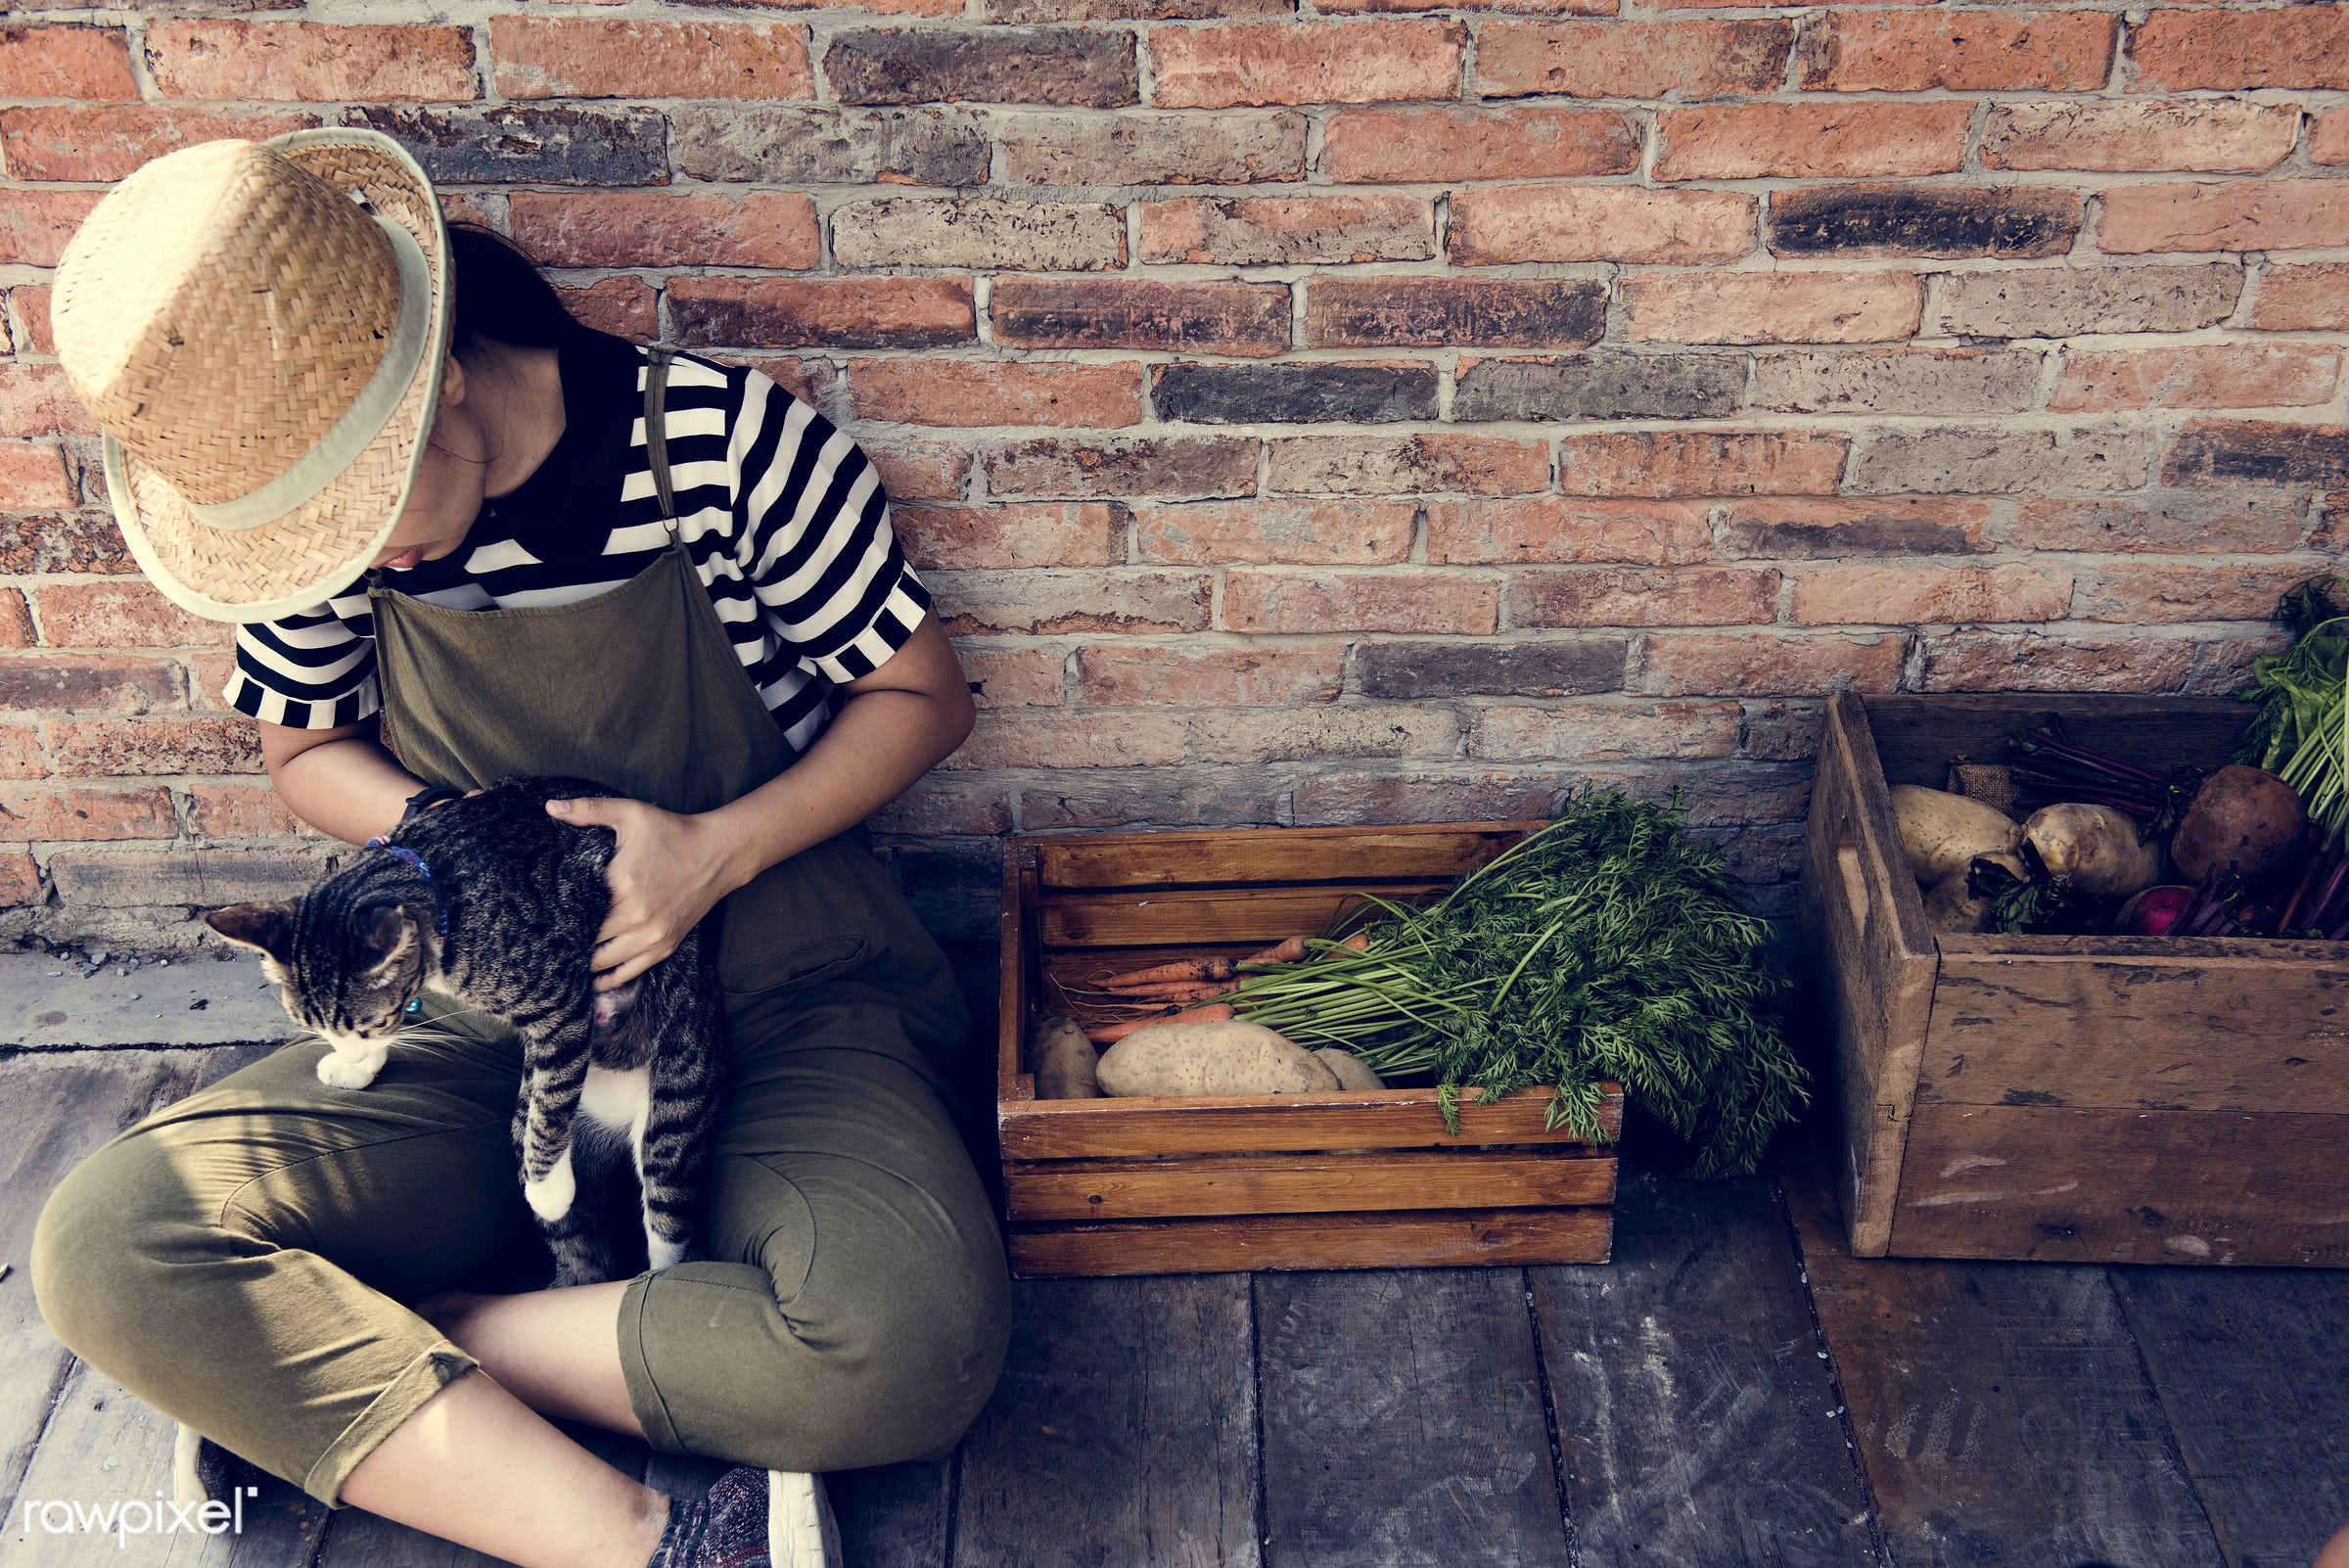 plant, cat, relax, botany, people, hand, nature, farmer, conservation, fresh, vegetarian, ingredient, ecology, hold, season...